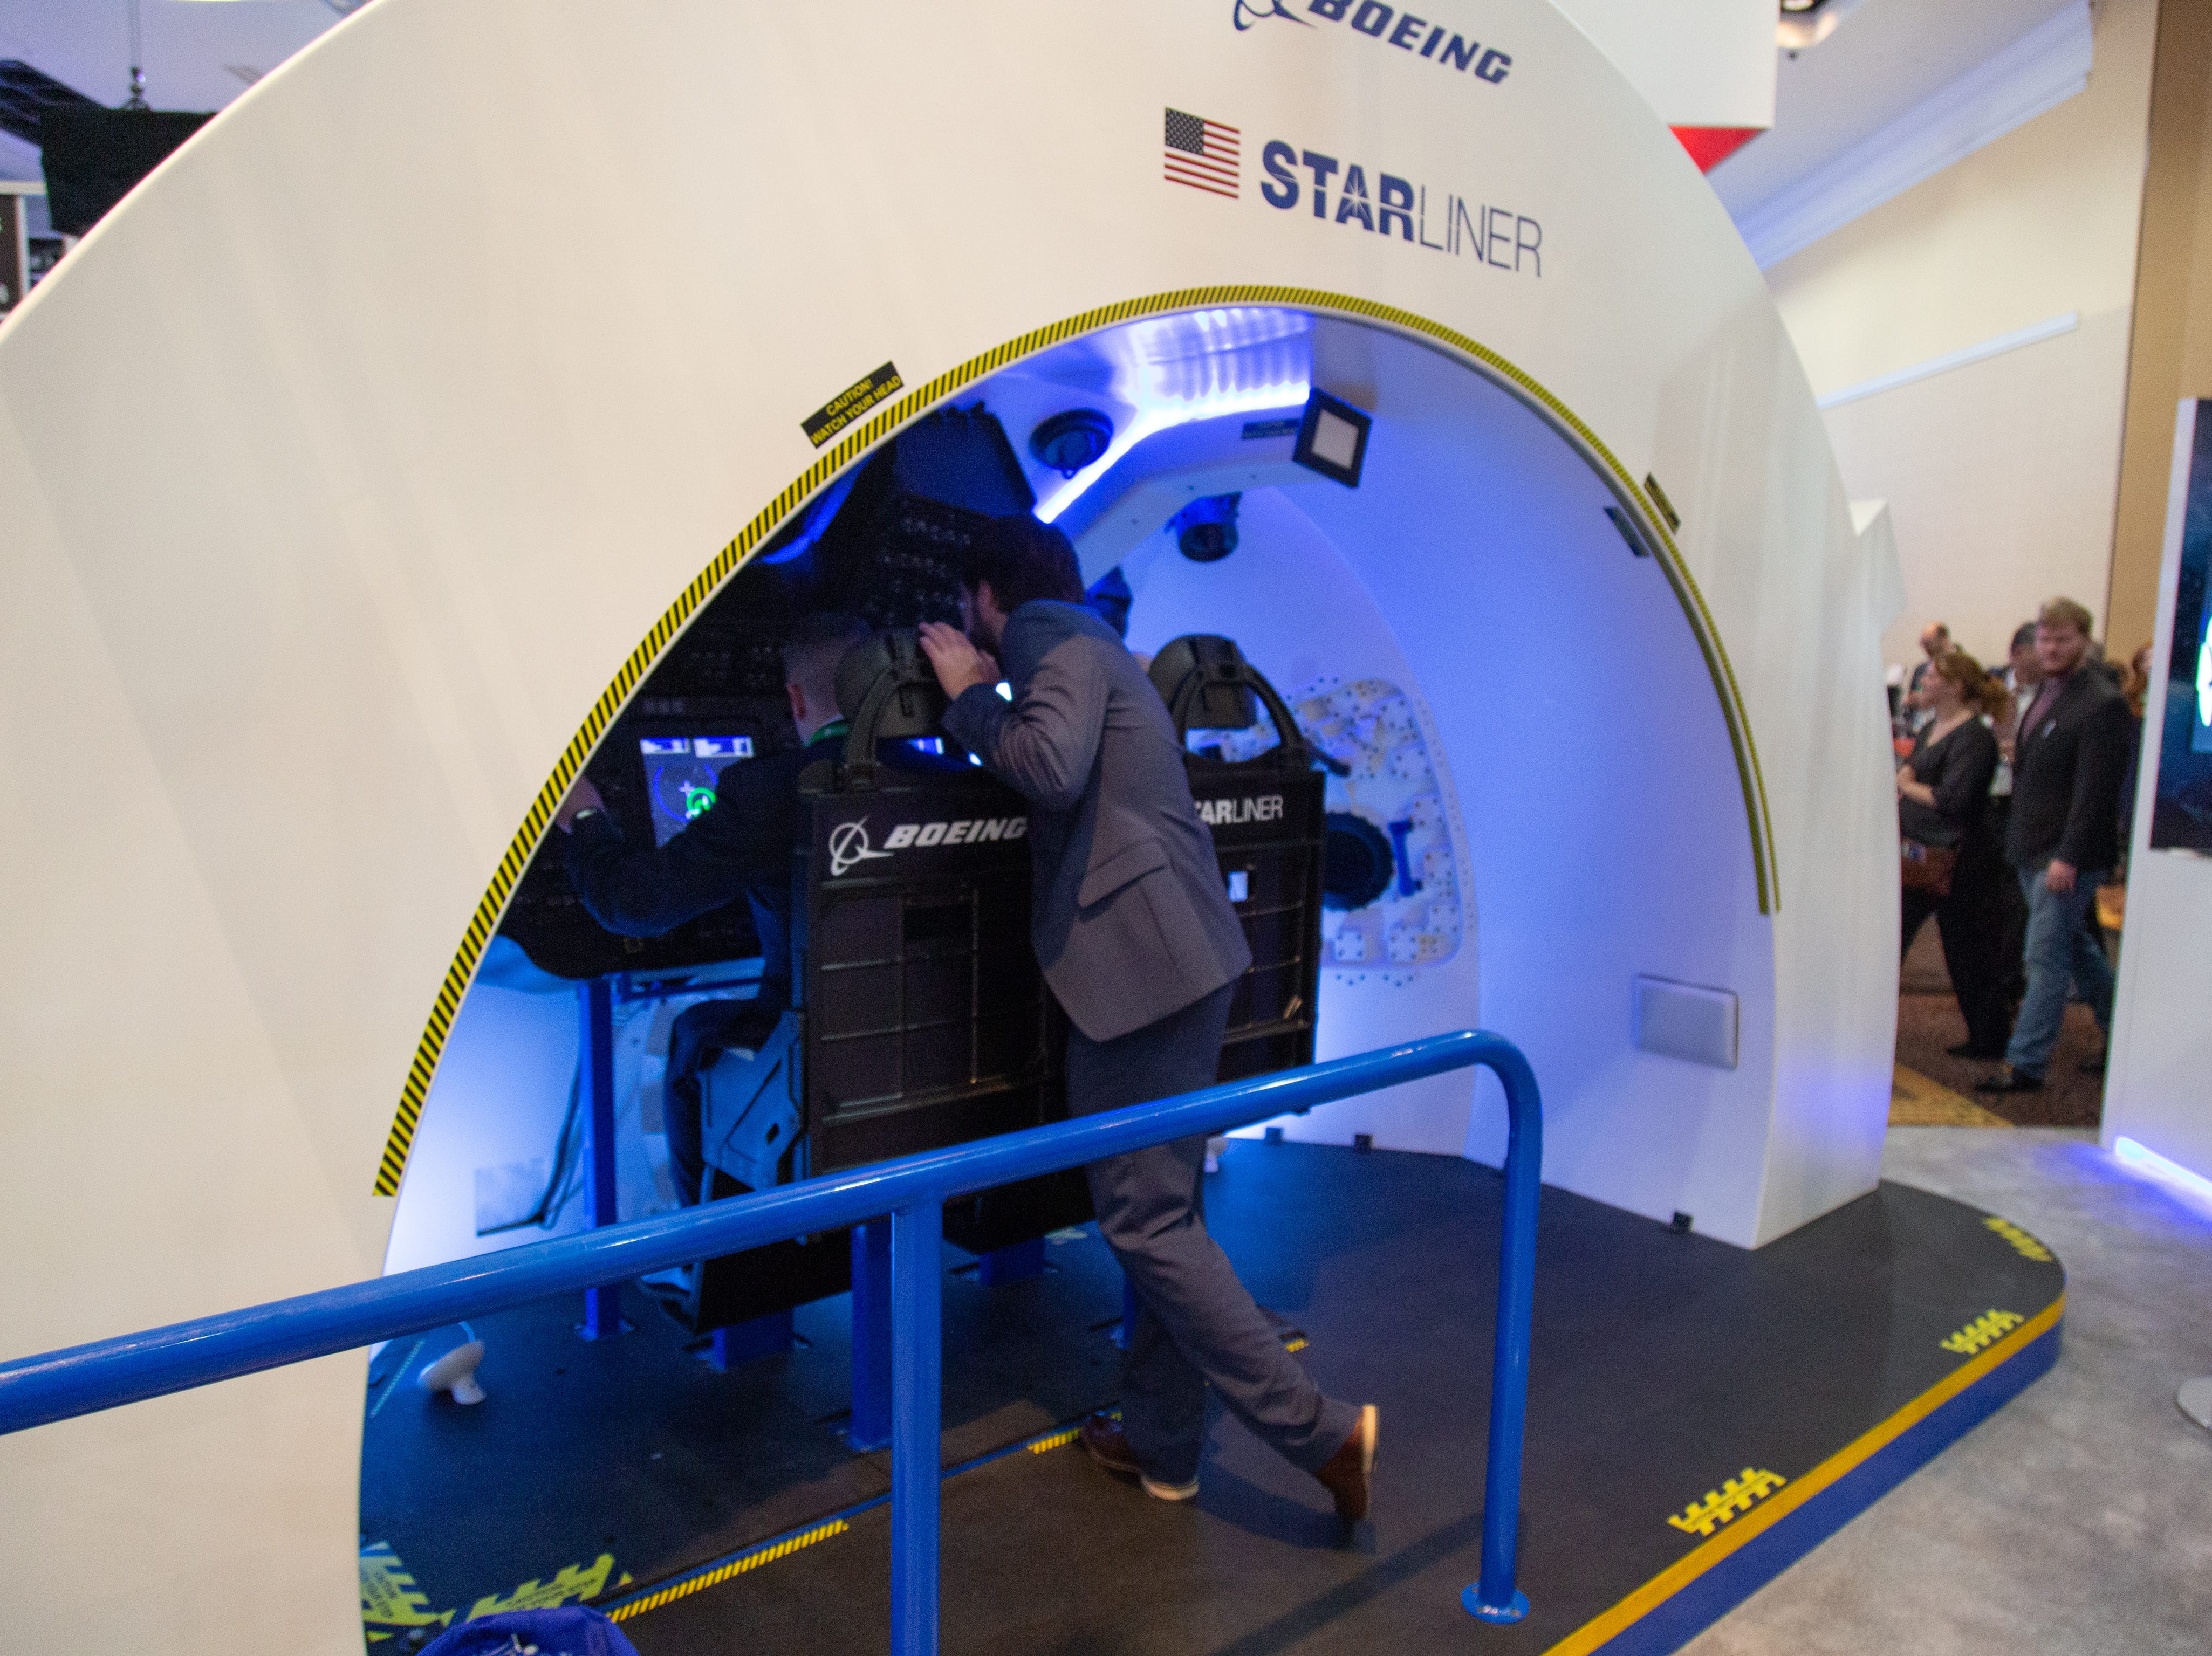 A Boeing Starliner simulator at the 35th Space Symposium.